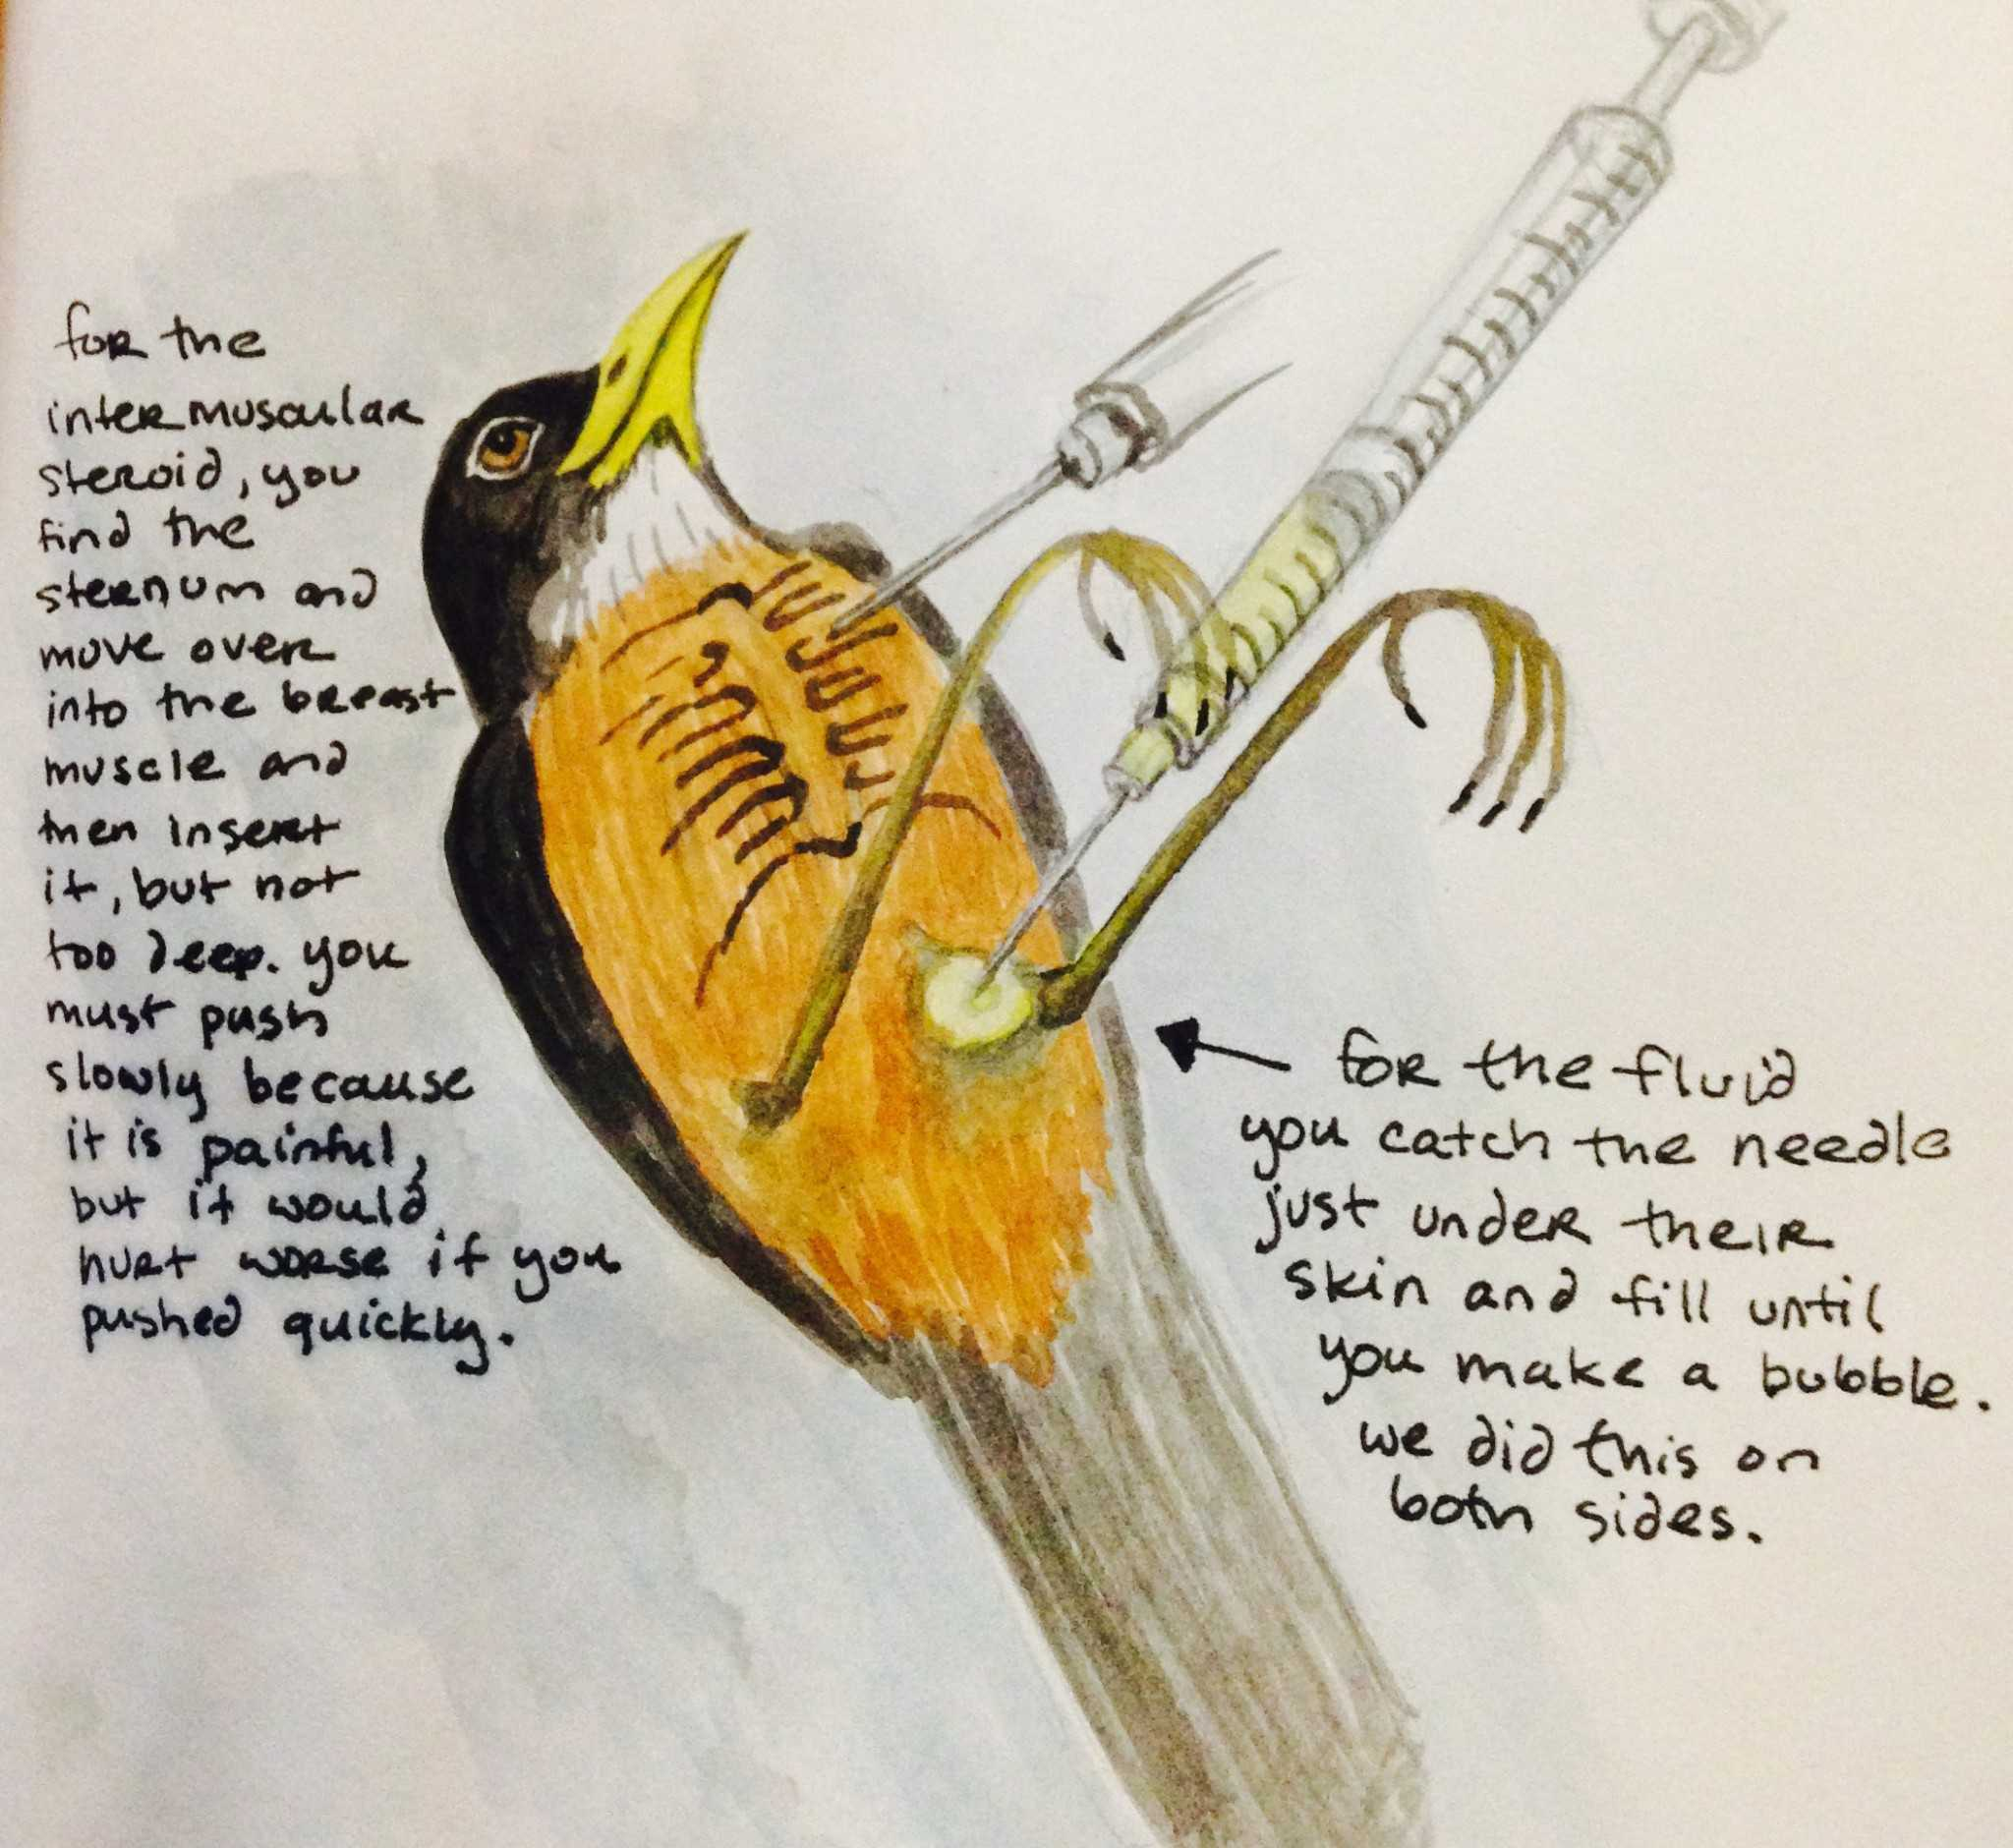 Watercolor sketch of how to do IM andsubcutaneous injections in an American Robin by Victoria Dixie Crowe. (2002)